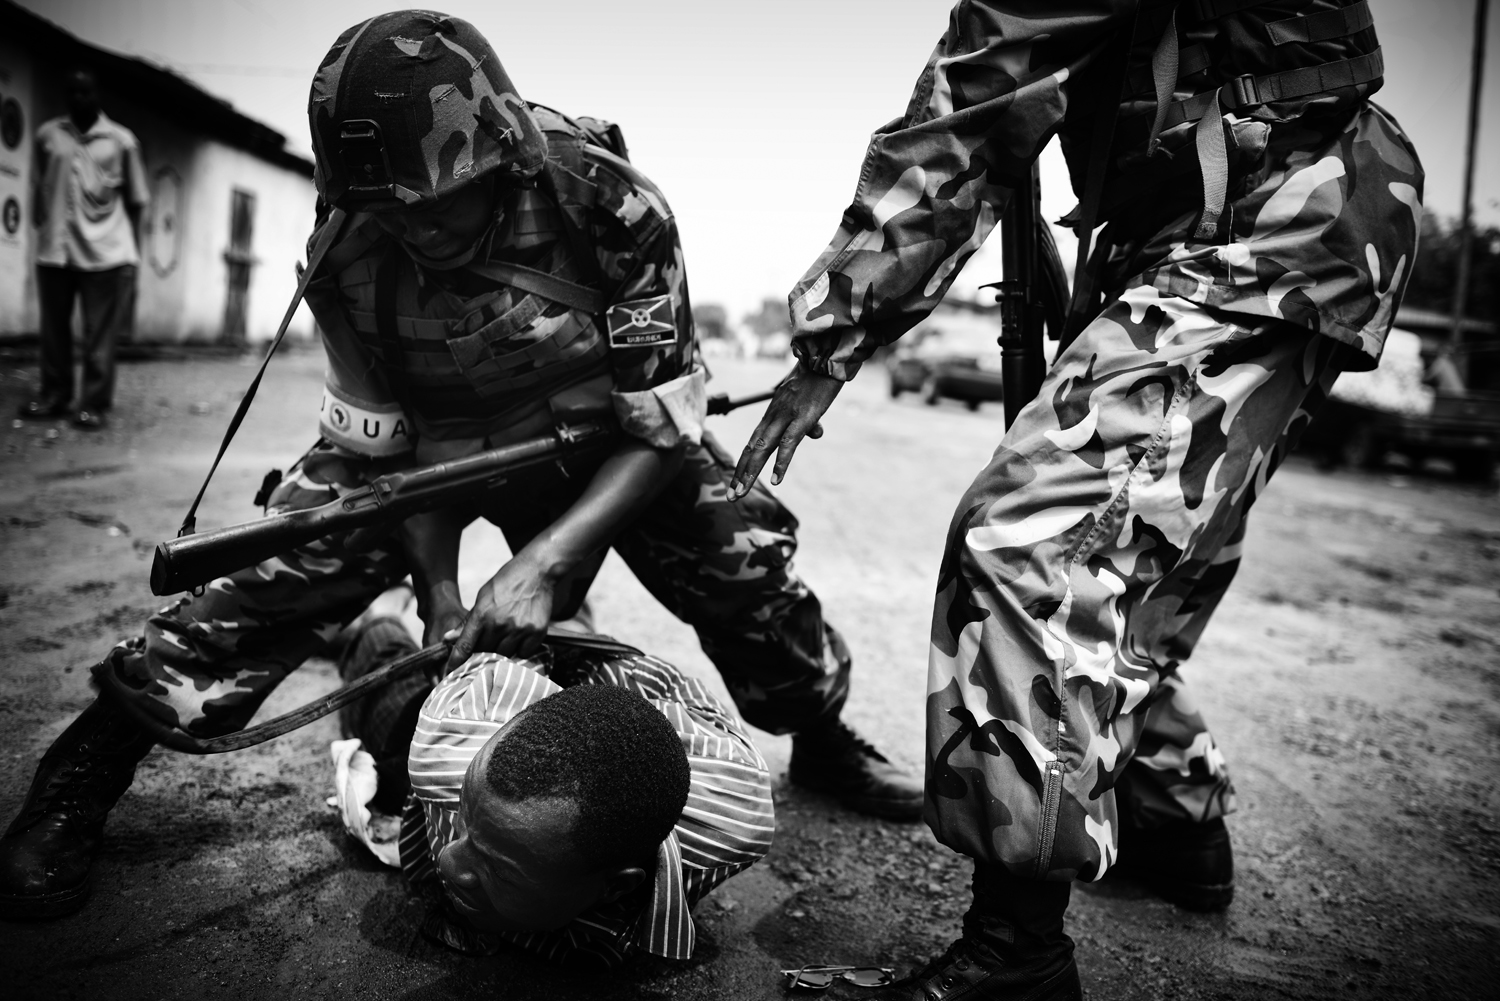 An ex-Séléka fighter is immobilized by African Union troops in the Miskine district. Feb. 1, 2014.